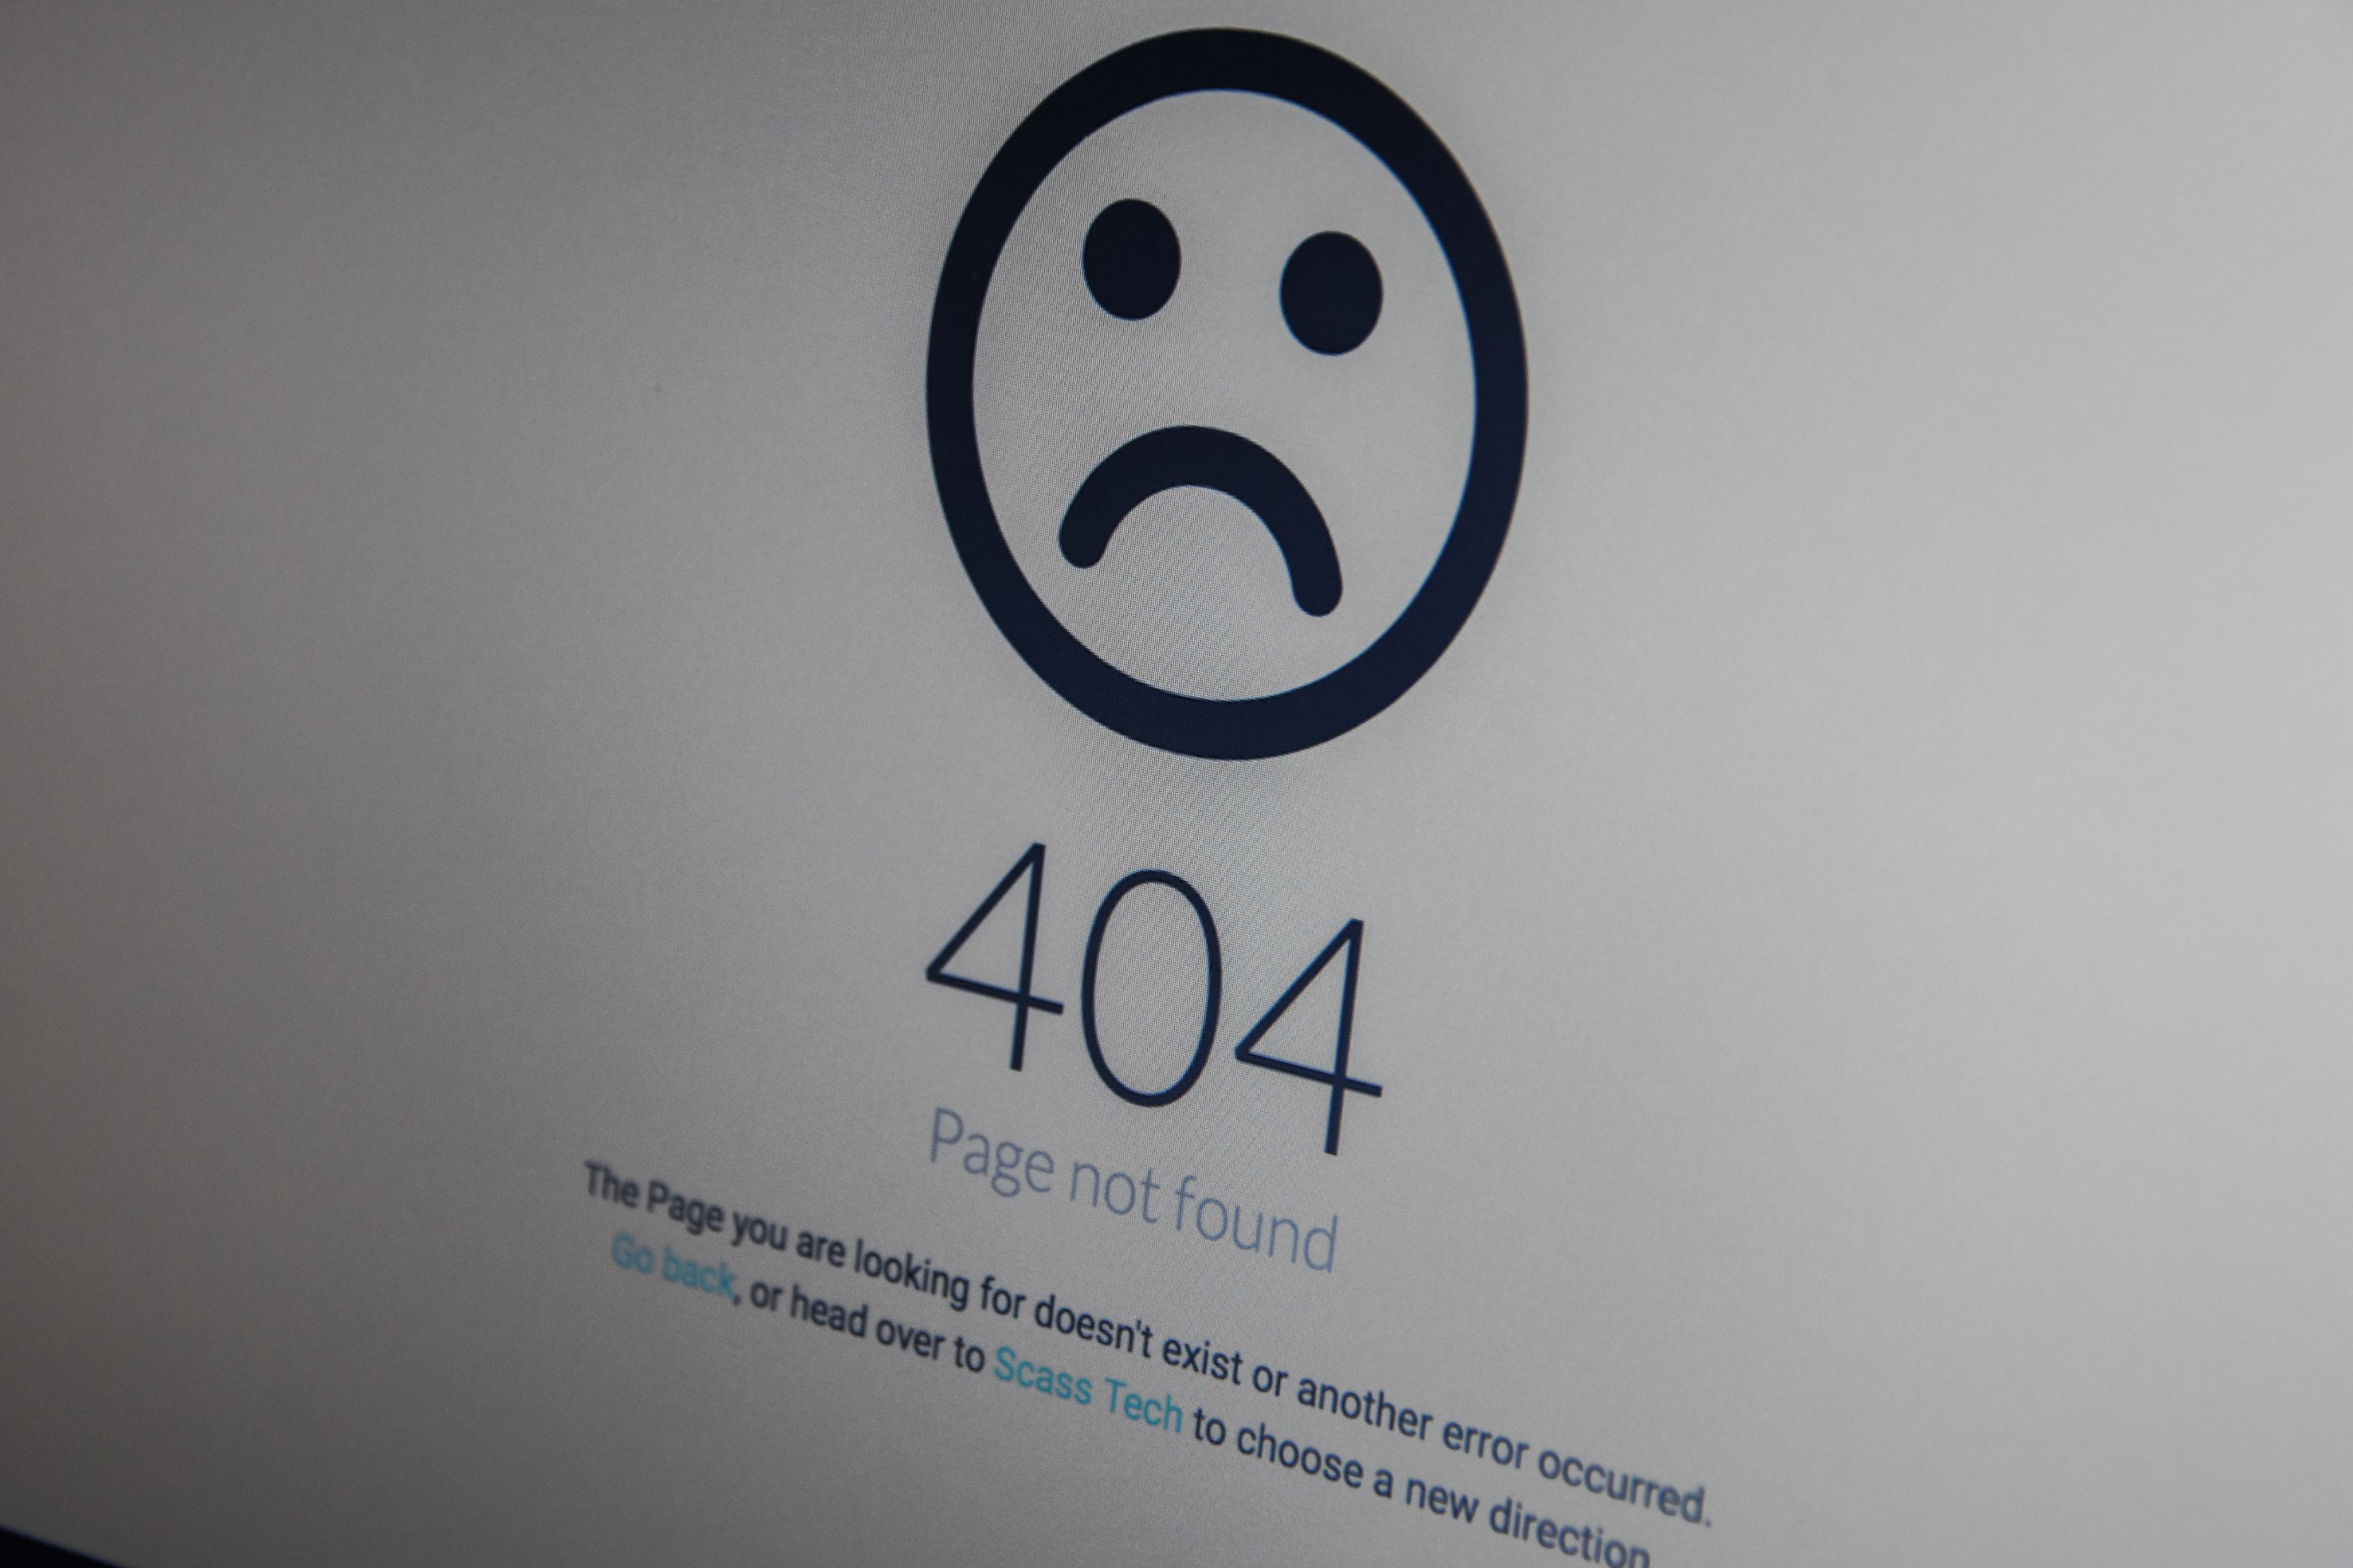 404 error message page on a laptop screen.